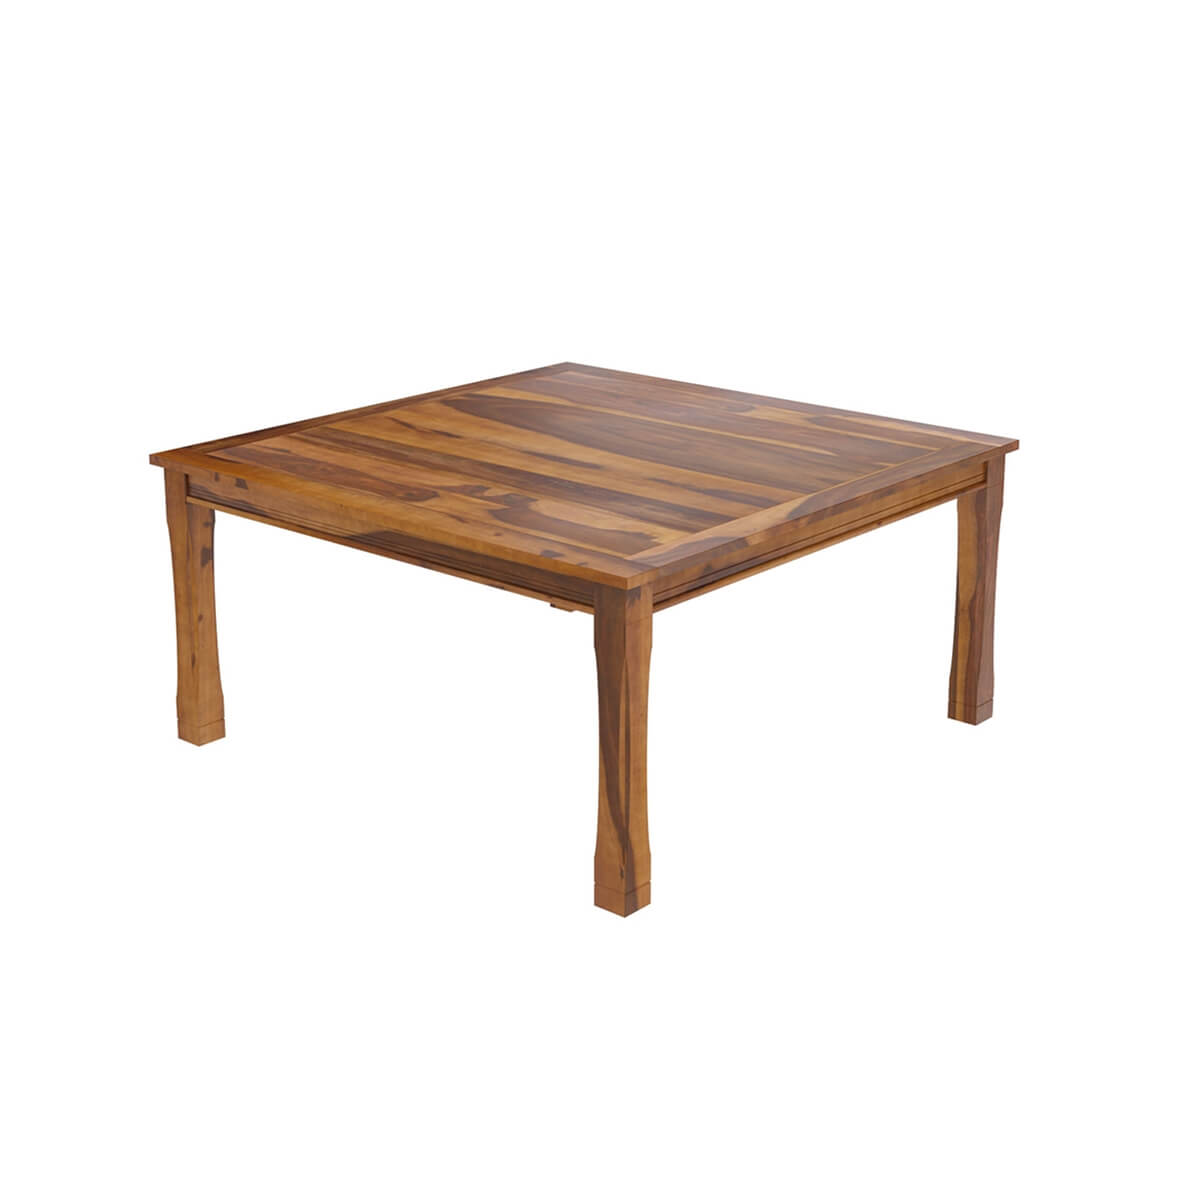 Dallas ranch transitional square wood dining room table for Hardwood dining table